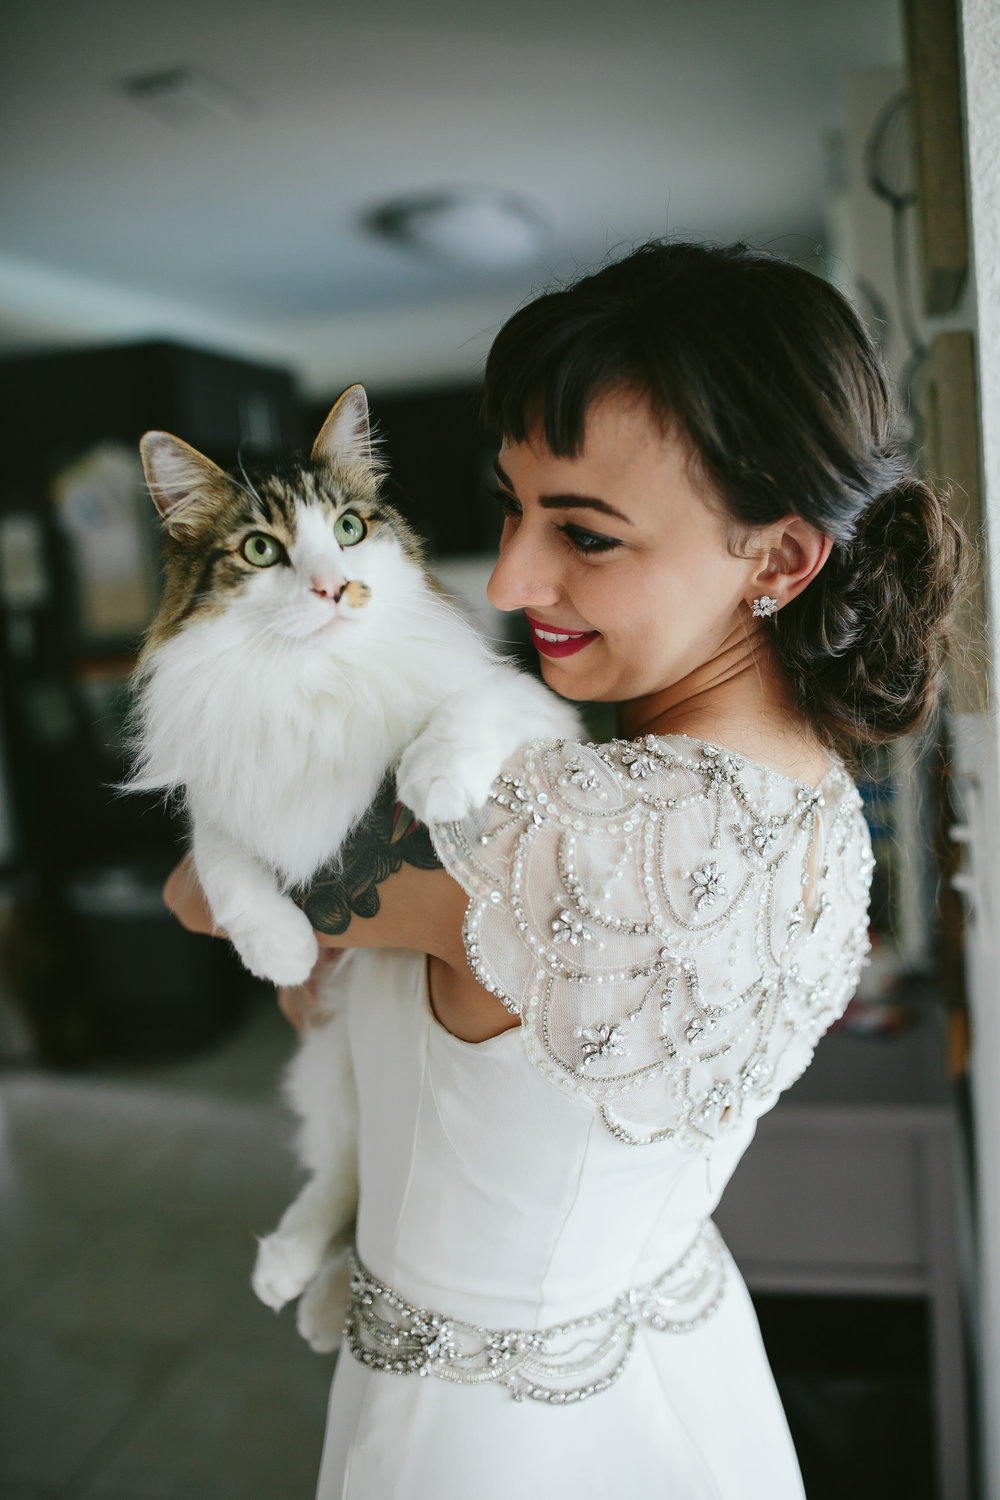 bride_and_groom_cats_in_home_session_wedding_fort_lauderdale_photographer_steph_lynn_photo-78.jpg